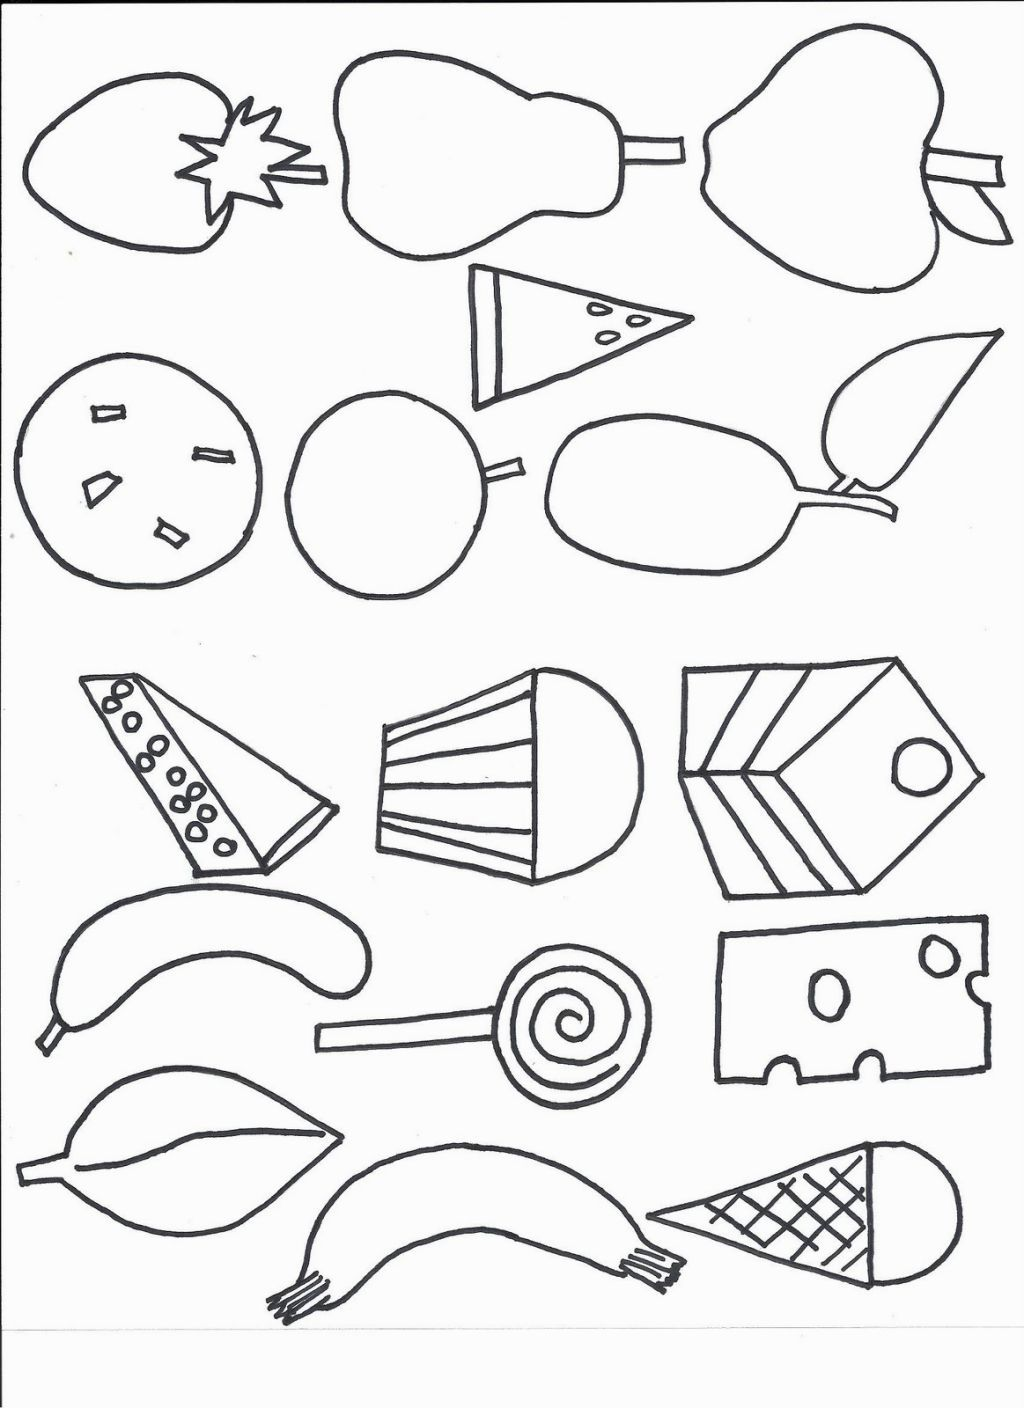 Hungry Caterpillar Coloring Page | Coloring Pages | Hungry ...